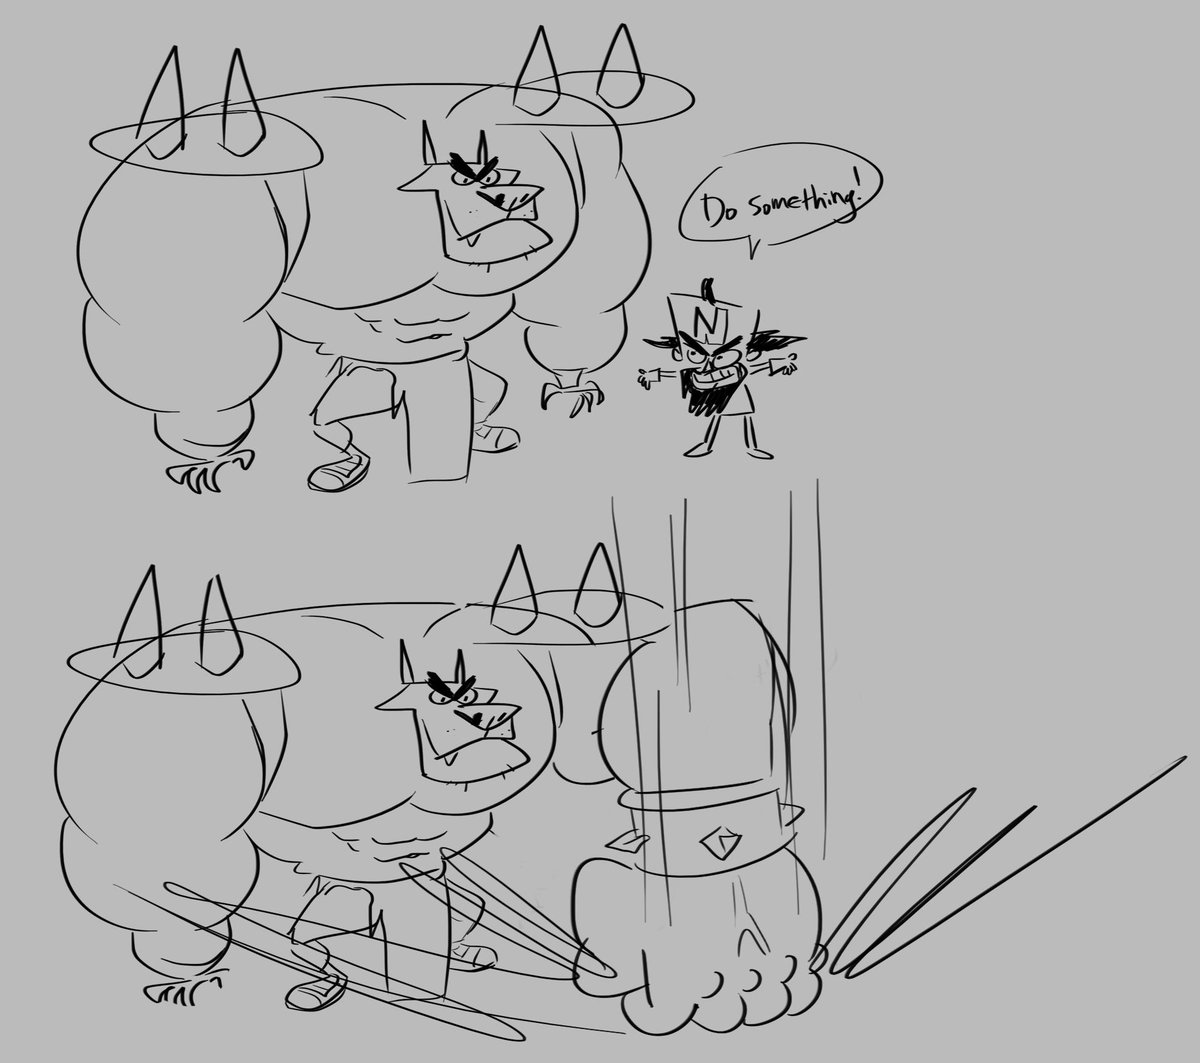 Silly crash bandicoot doodles from stream